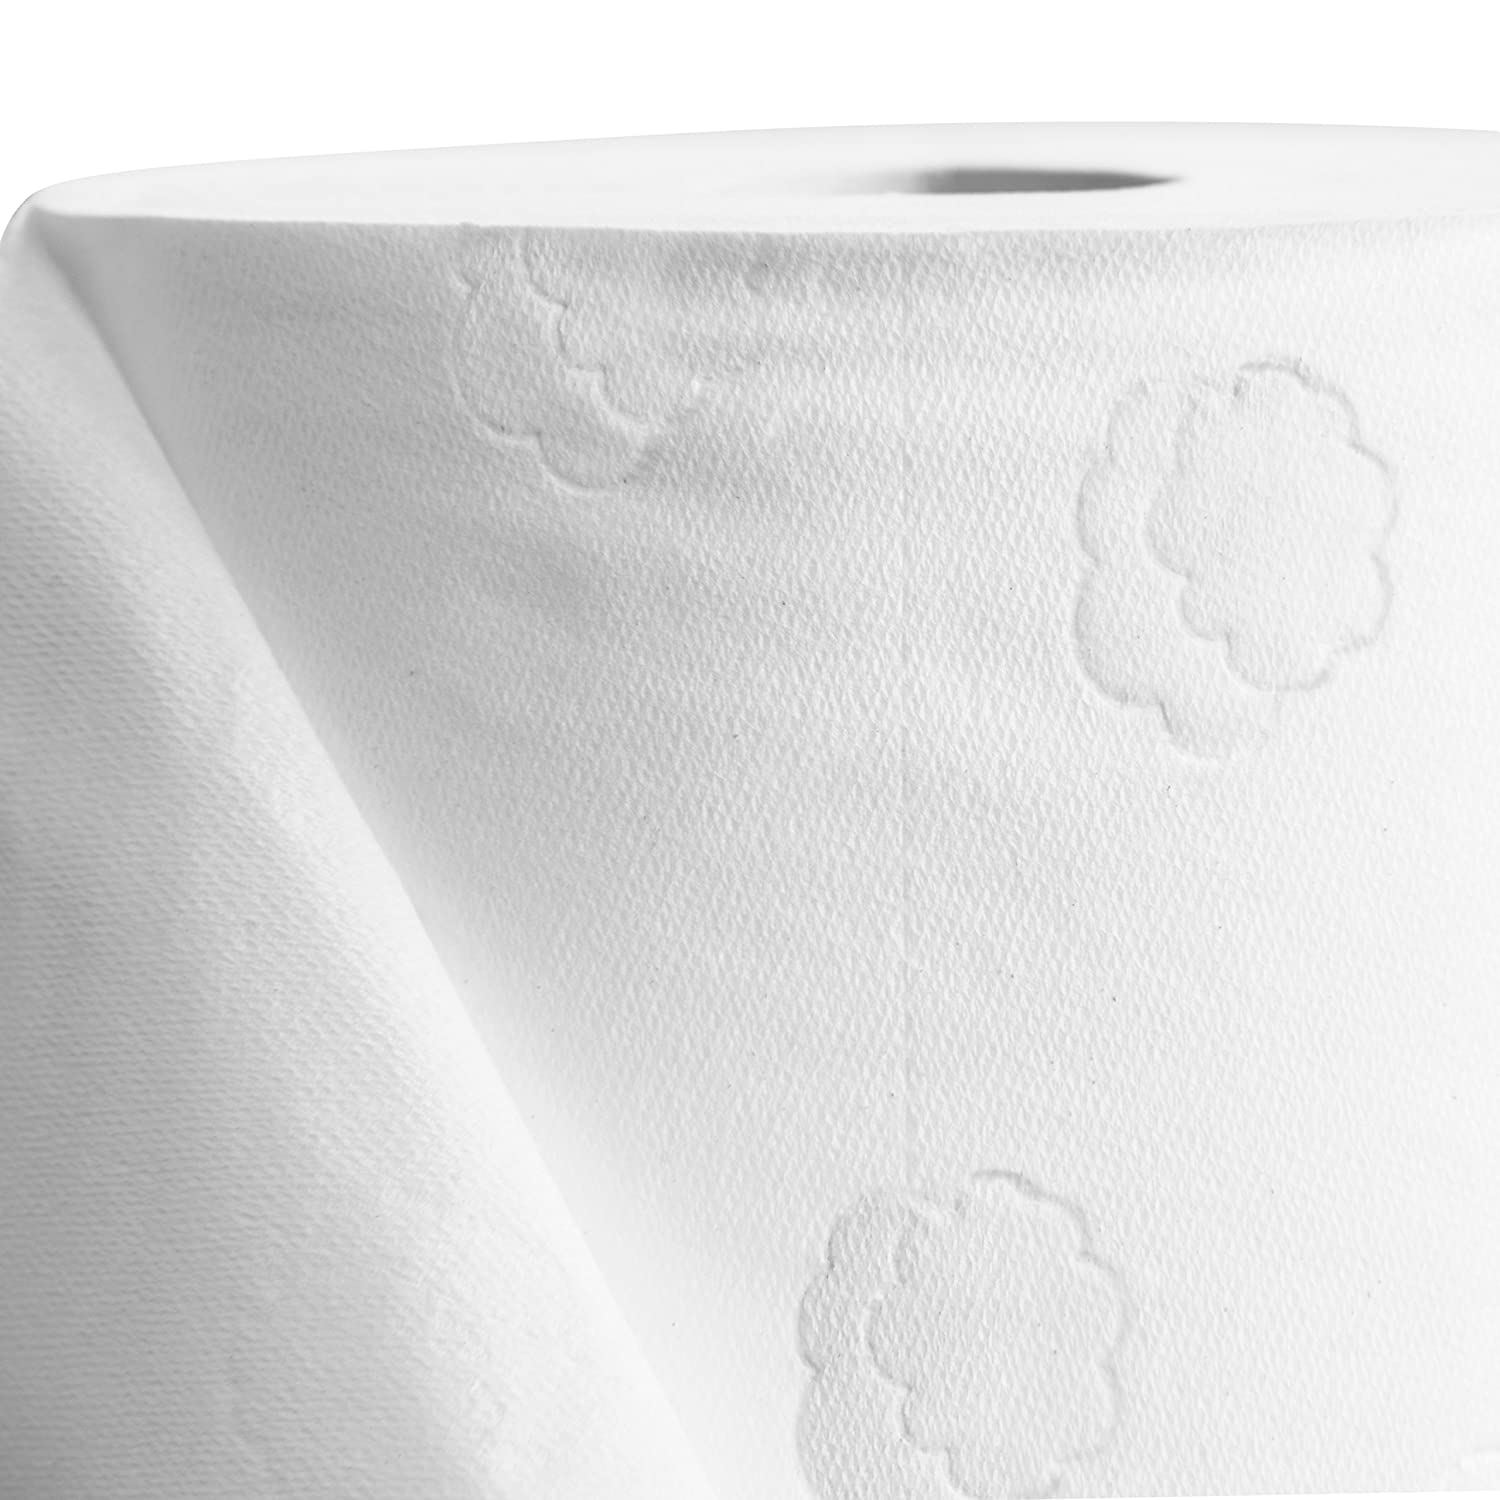 Amazon.com: White Cloud fuerte y suave 2 capas papel ...